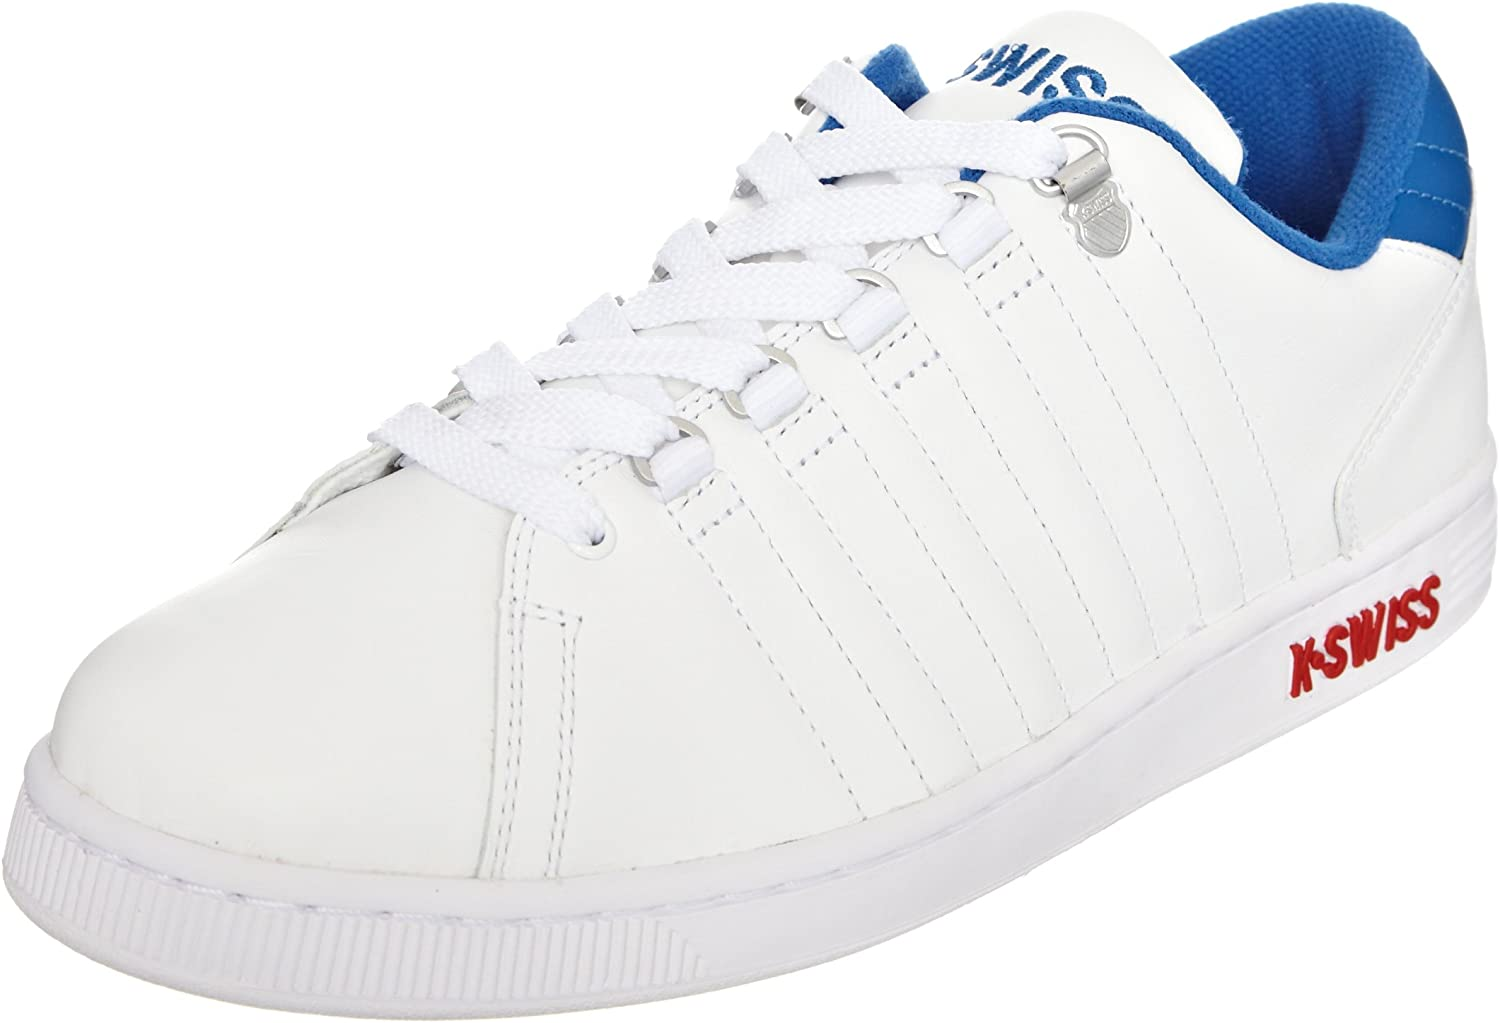 Kswiss Men's Lozan Fashion Trainer